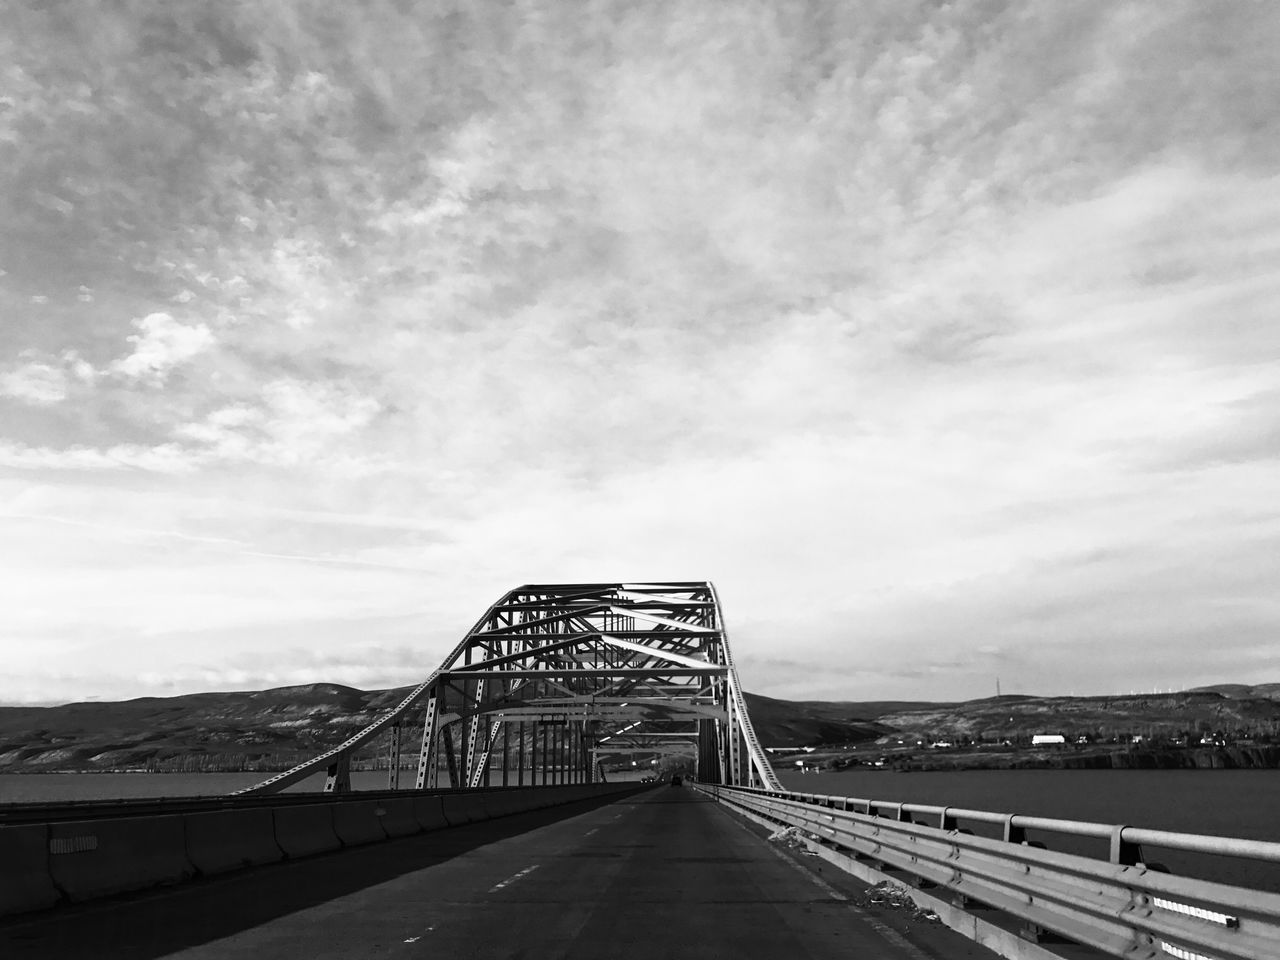 Built Structure Sky Architecture Railing The Way Forward Cloud - Sky Day Outdoors Bridge - Man Made Structure Connection No People Low Angle View Building Exterior Mountain Miles Away Bnw_bridges Allover The World Bnw_friday_eyeemchallenge Travel Suspension Bridge Bridges Bridge Blackandwhite Black And White Landscapes Water